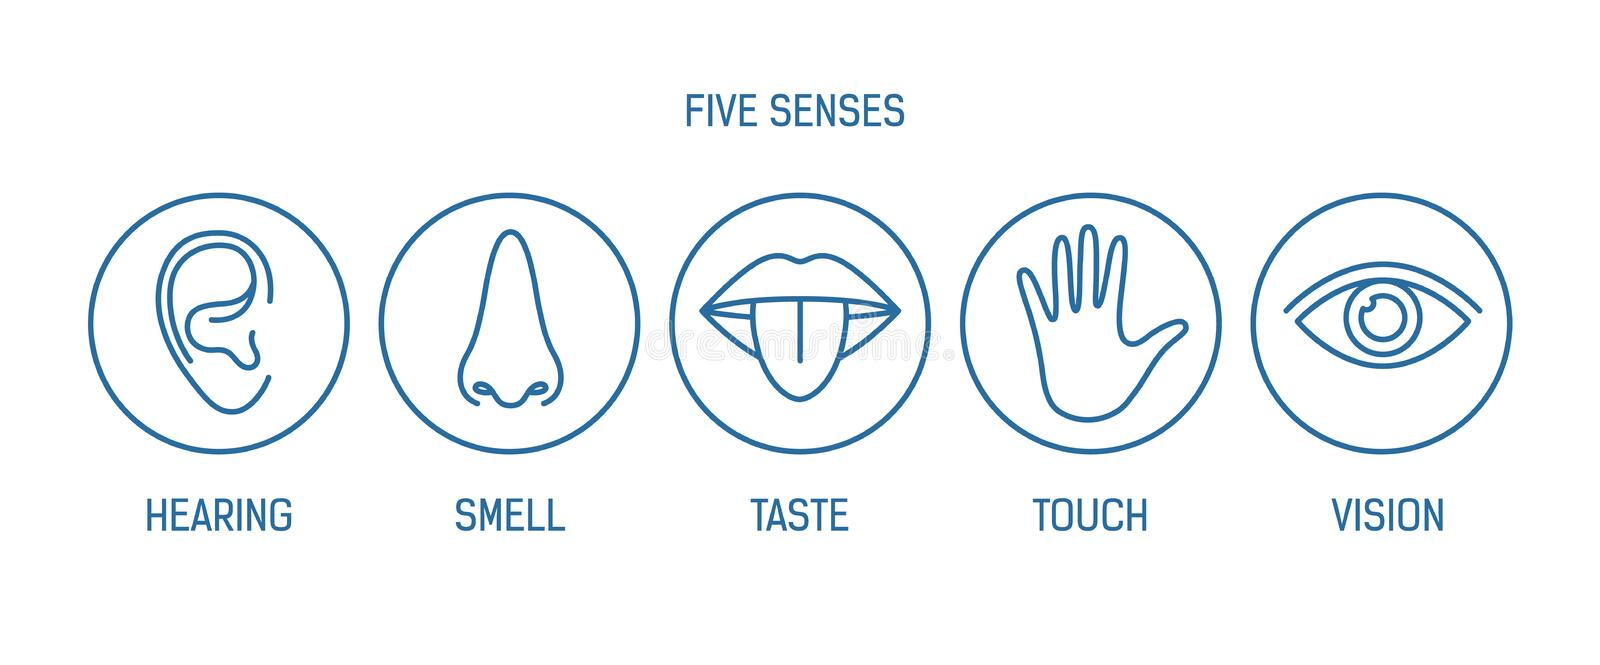 Collection of 5 senses - hearing, smell, taste, touch, vision. Bundle of human sensory organs drawn with contour lines stock illustration